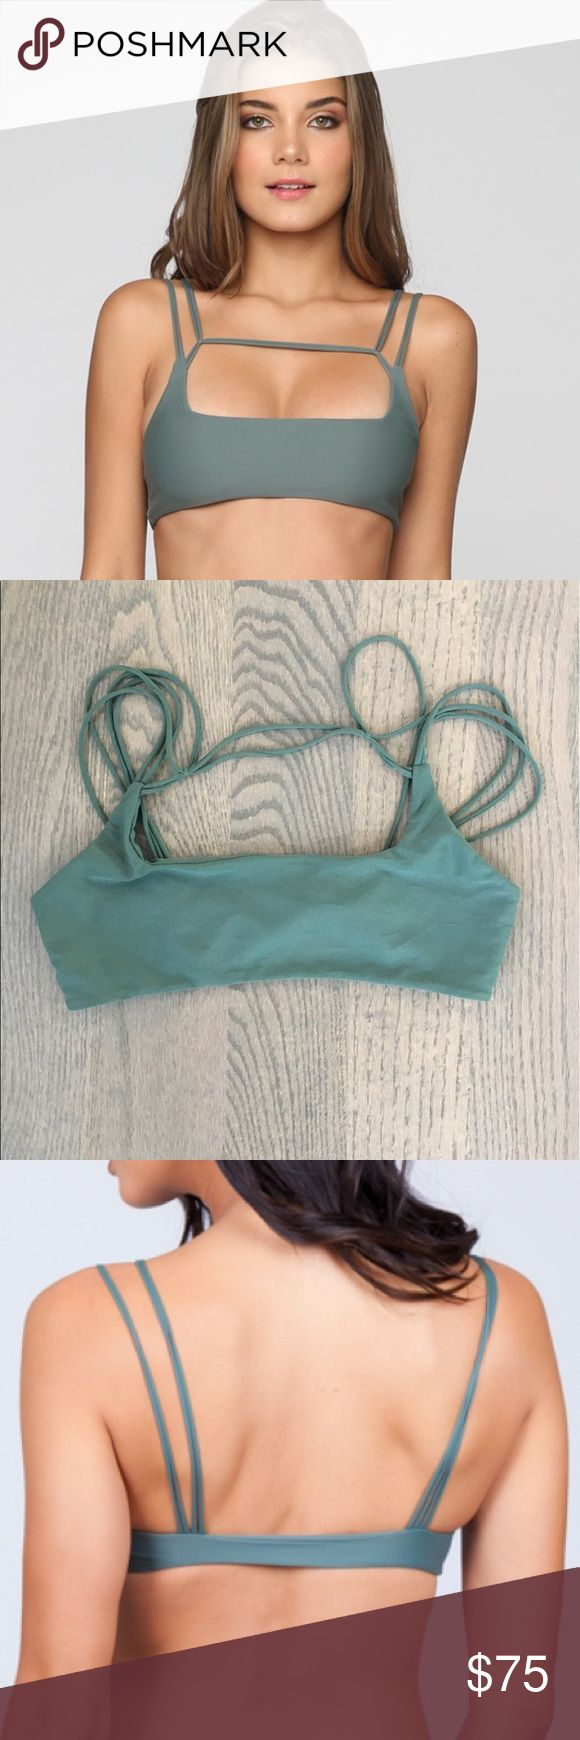 Mikoh Kapa'a Bikini Top Army green strappy top from Mikoh in size MED.  Worn once for about an hour, and hand washed.  Perfect condition, just too big on me so I ordered another in a smaller size. Mikoh Swim Bikinis